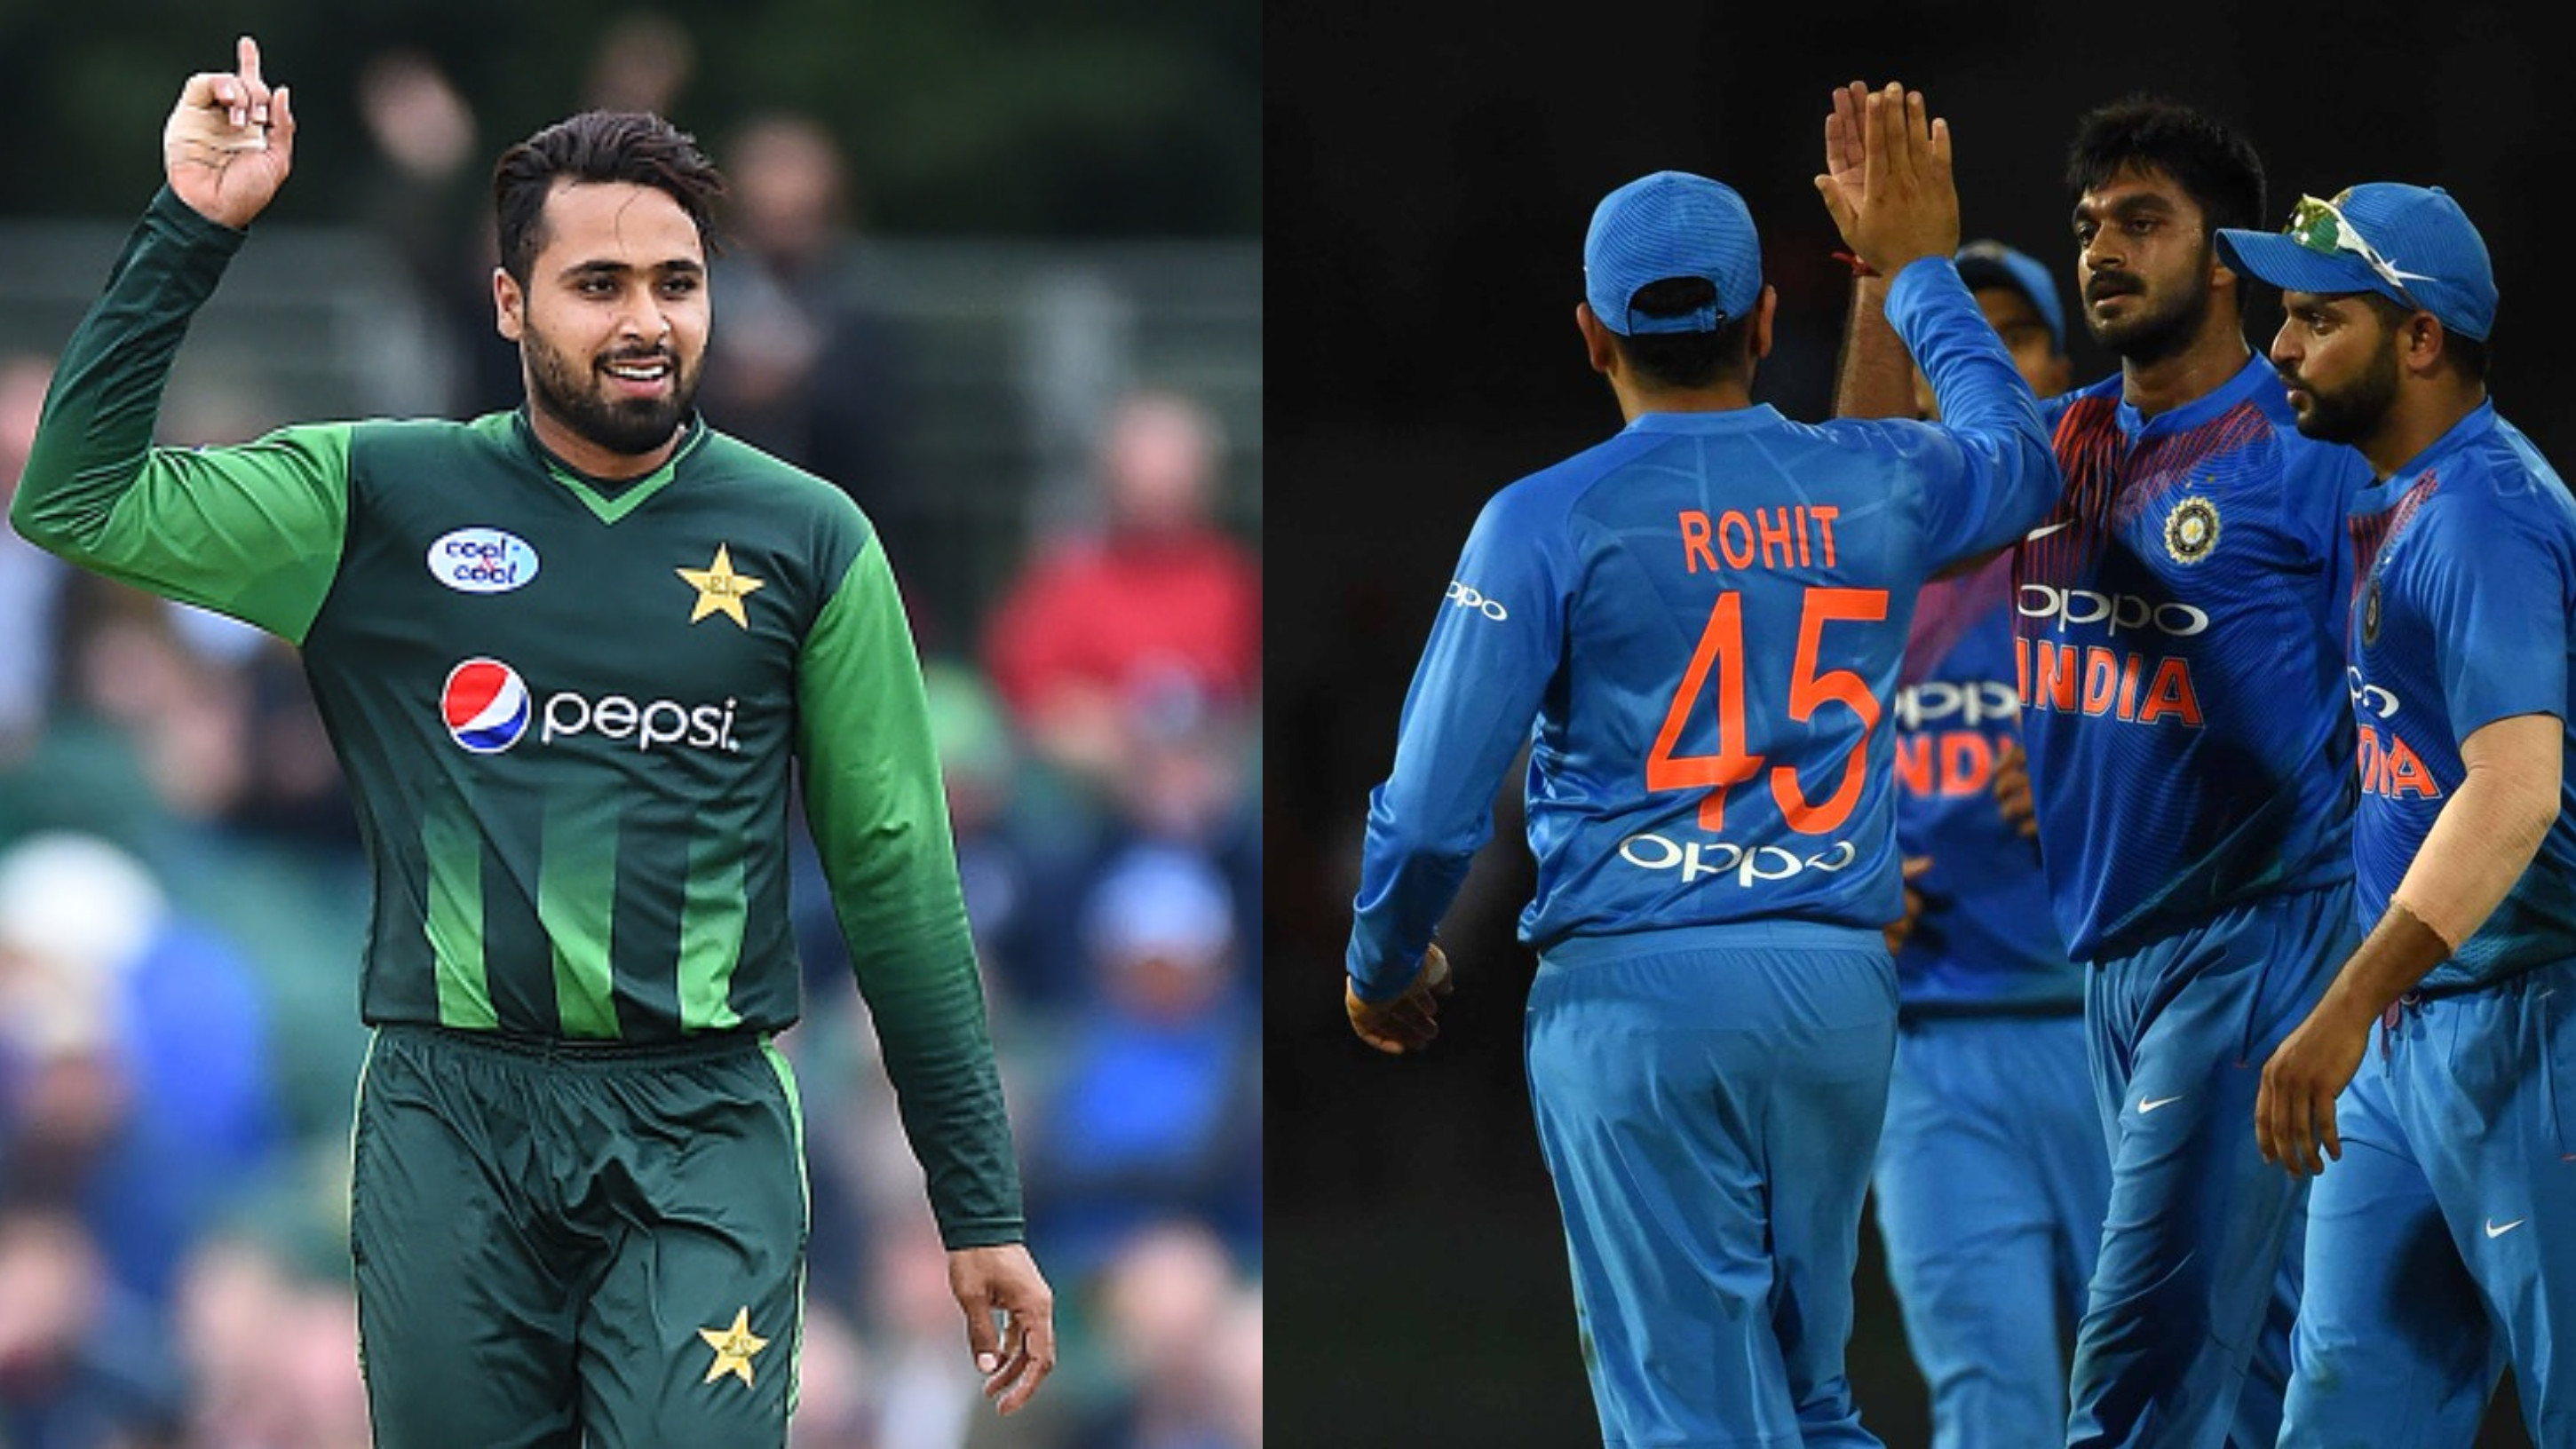 Asia Cup 2018: India are still a world-class team even without Virat Kohli, says Faheem Ashraf